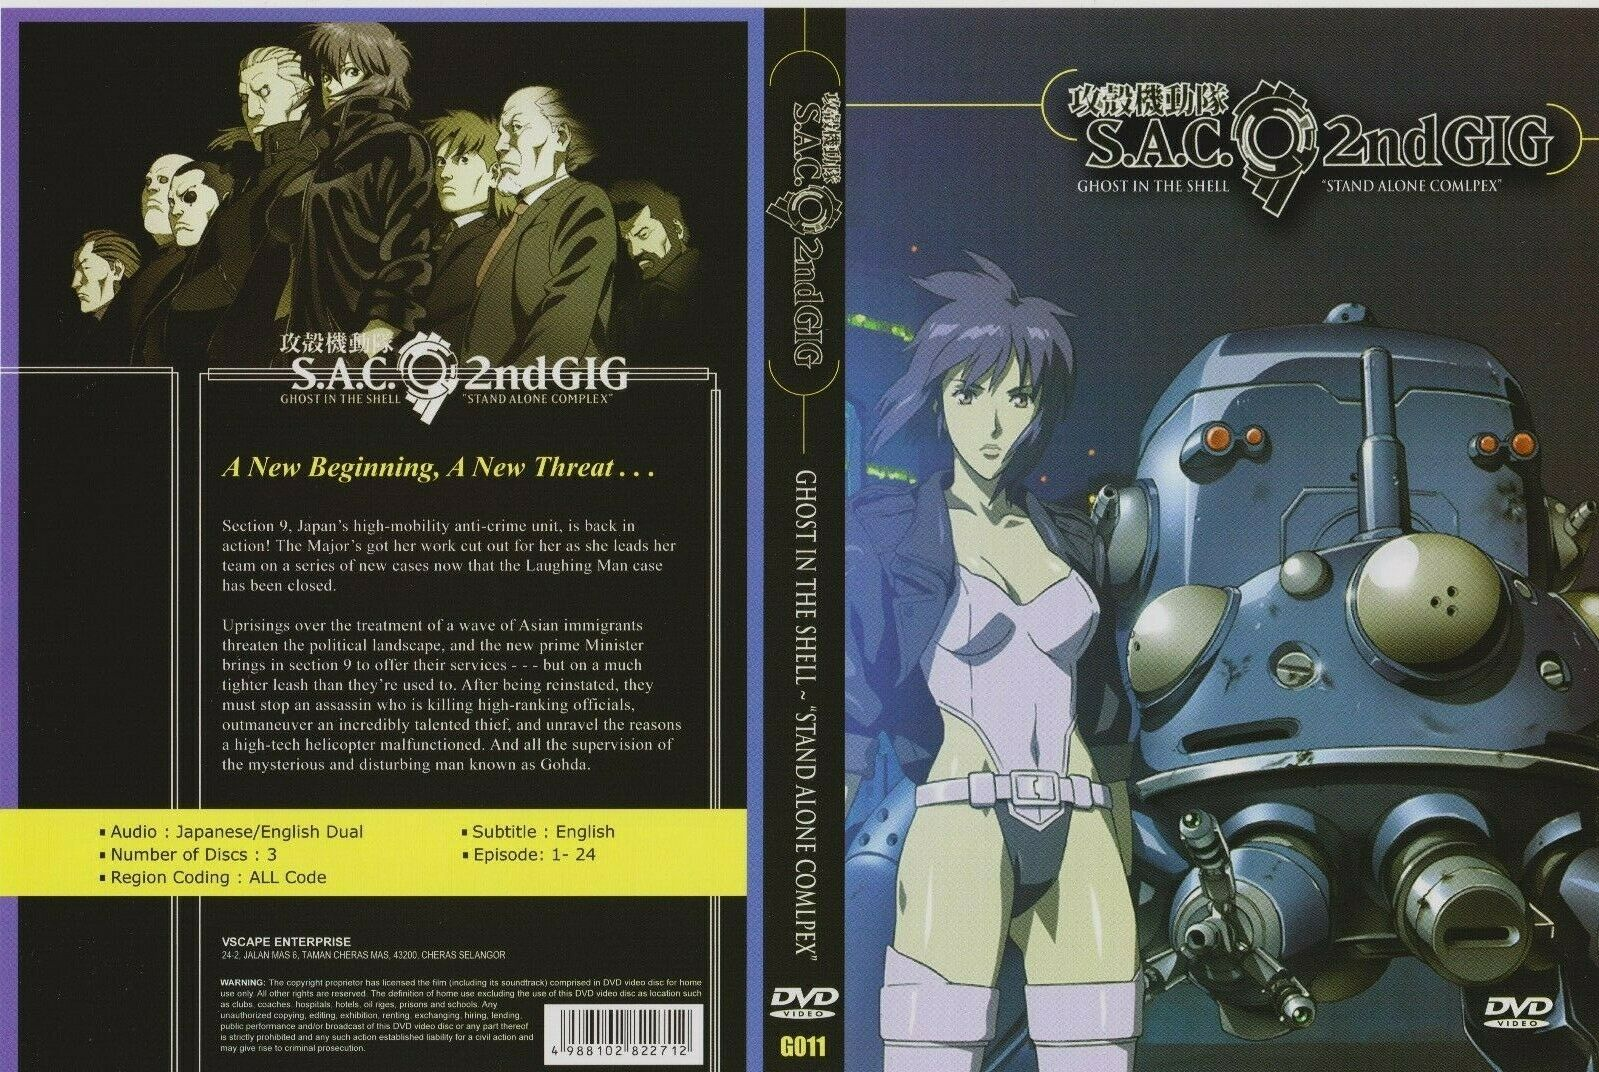 Motoko Wire Wall Scroll Ghost In The Shell Sac 2nd Gig Anime Fabric Poster For Sale Online Ebay